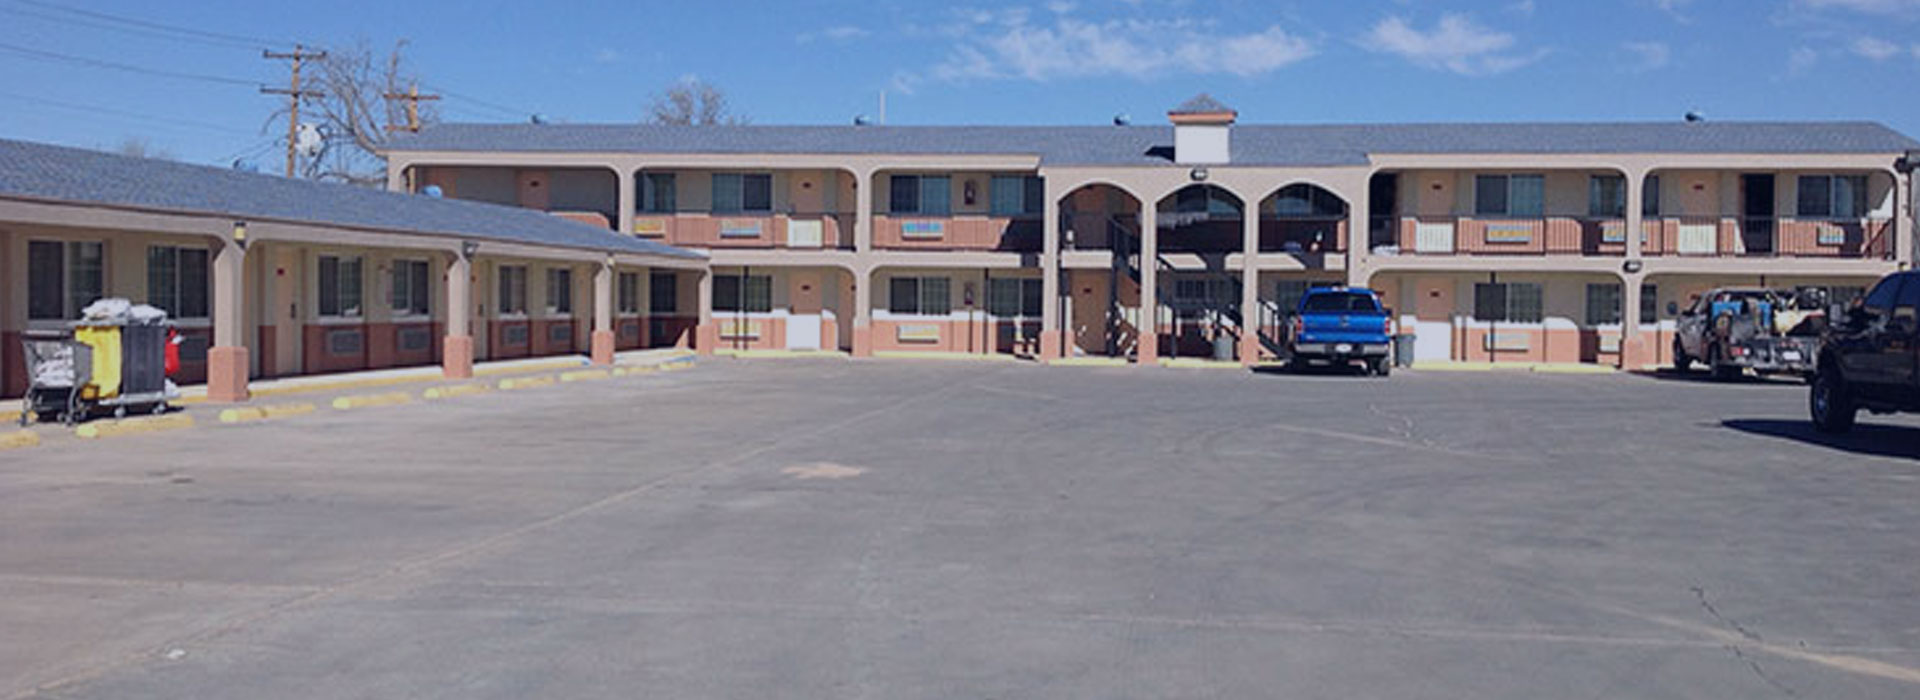 Best Motels Accommodation Hotels Near Me Kermit Texas